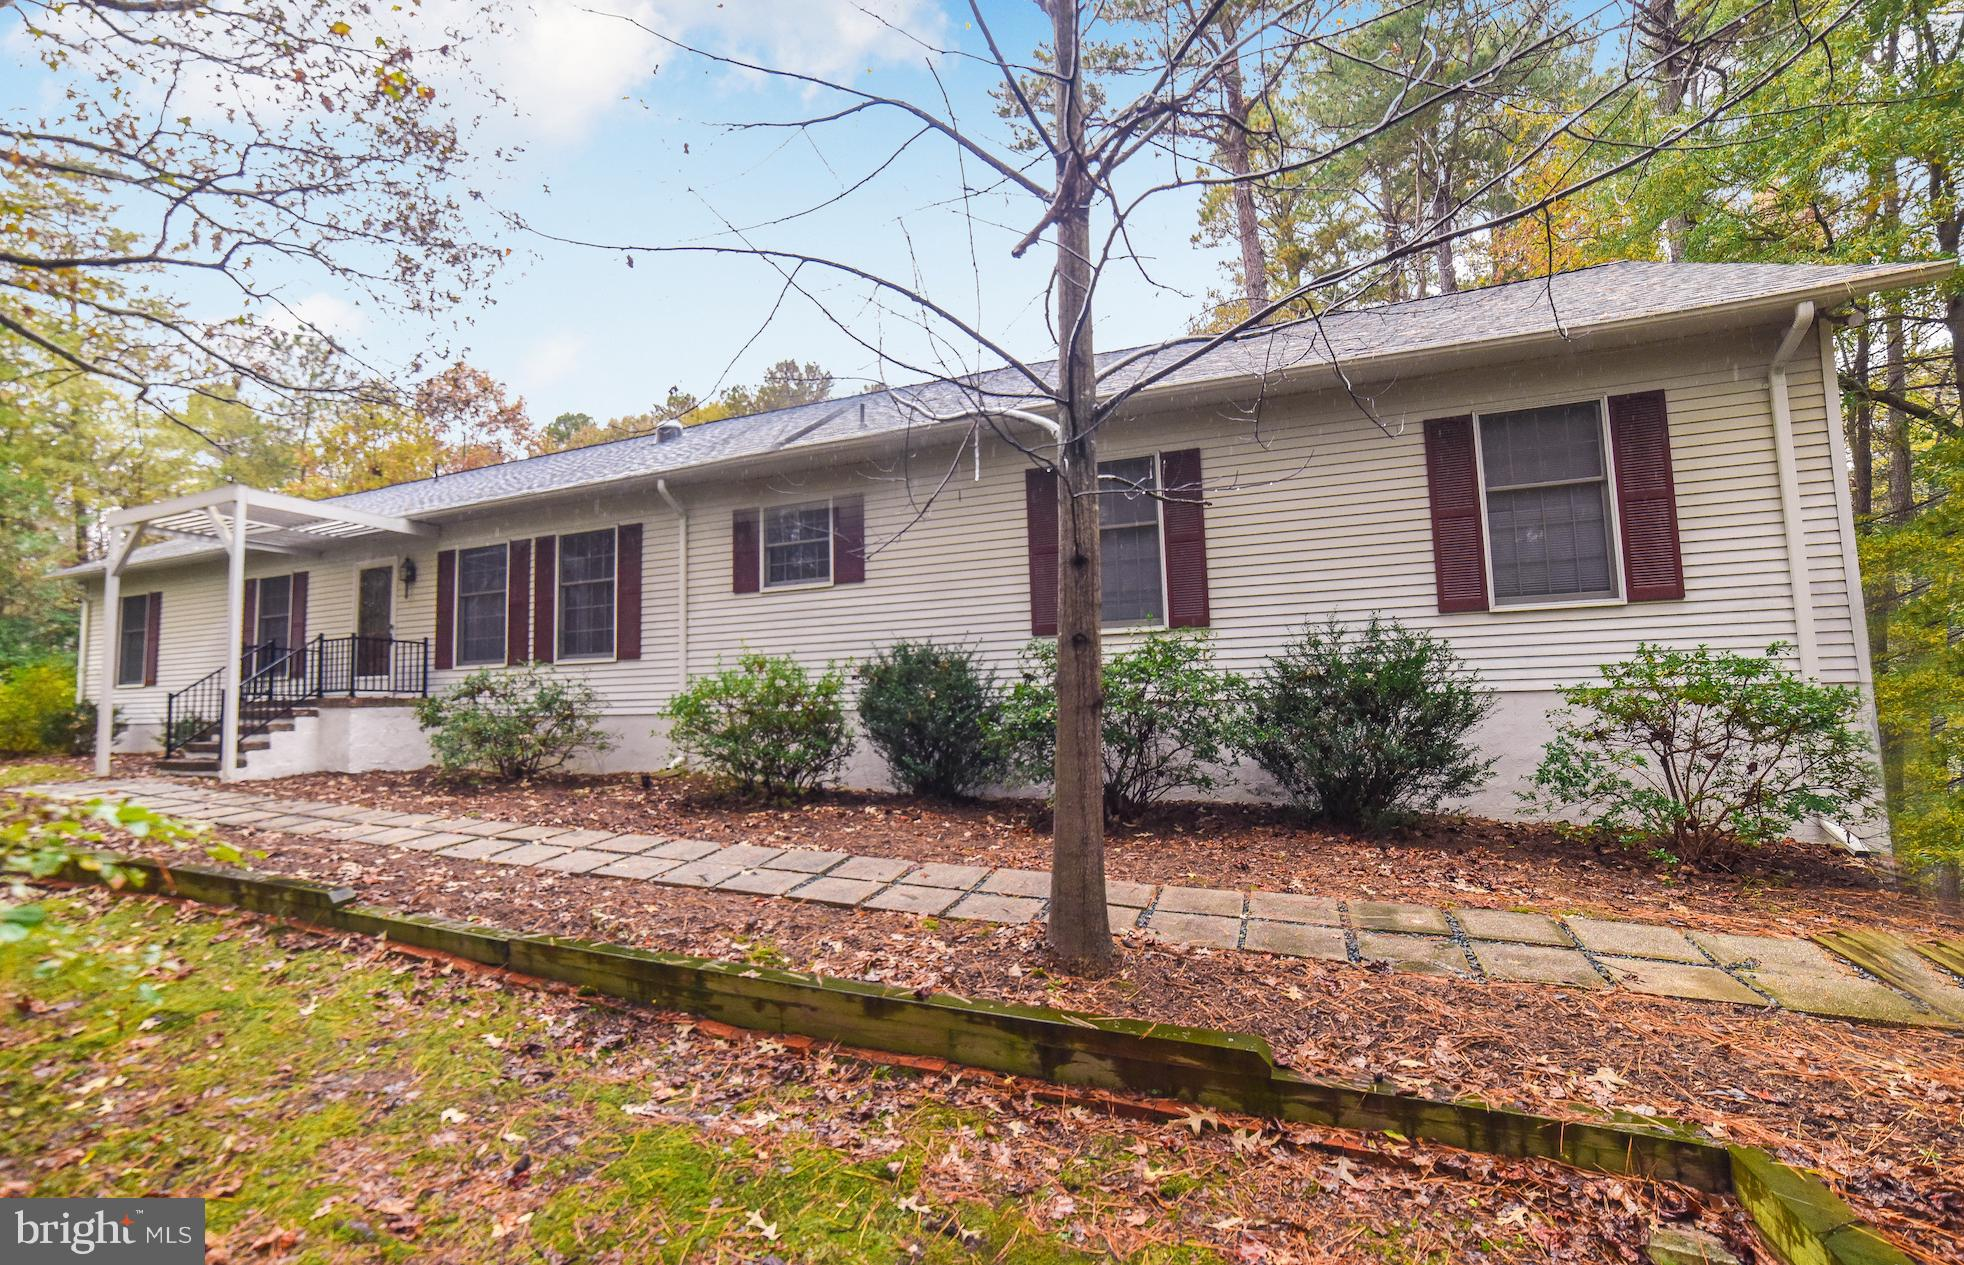 Beautiful rambler on a secluded 1.11 acre lot in Wildewood.  Hardwood floors in foyer, family room a